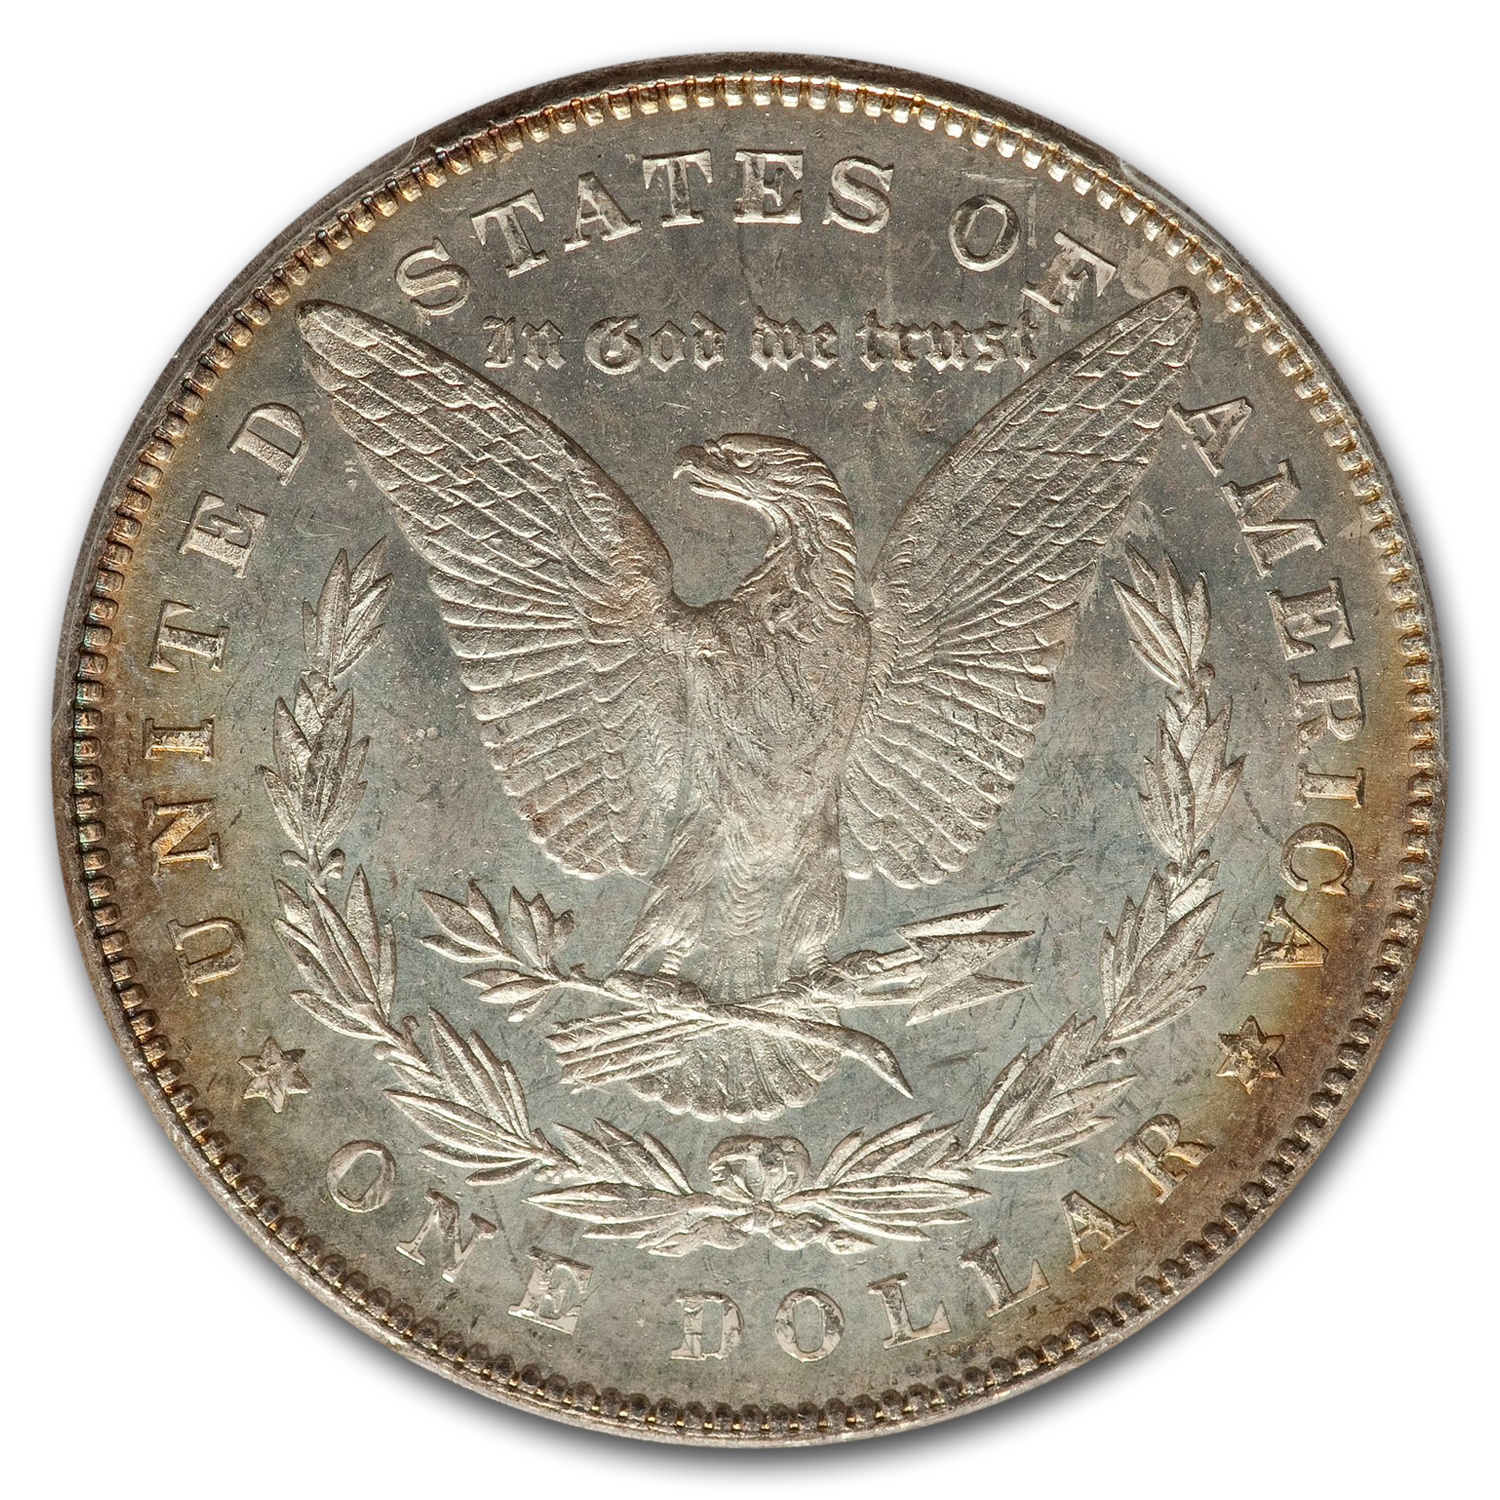 1878 Morgan Dollar 7 TF Rev of 78 MS-63 DMPL PCGS